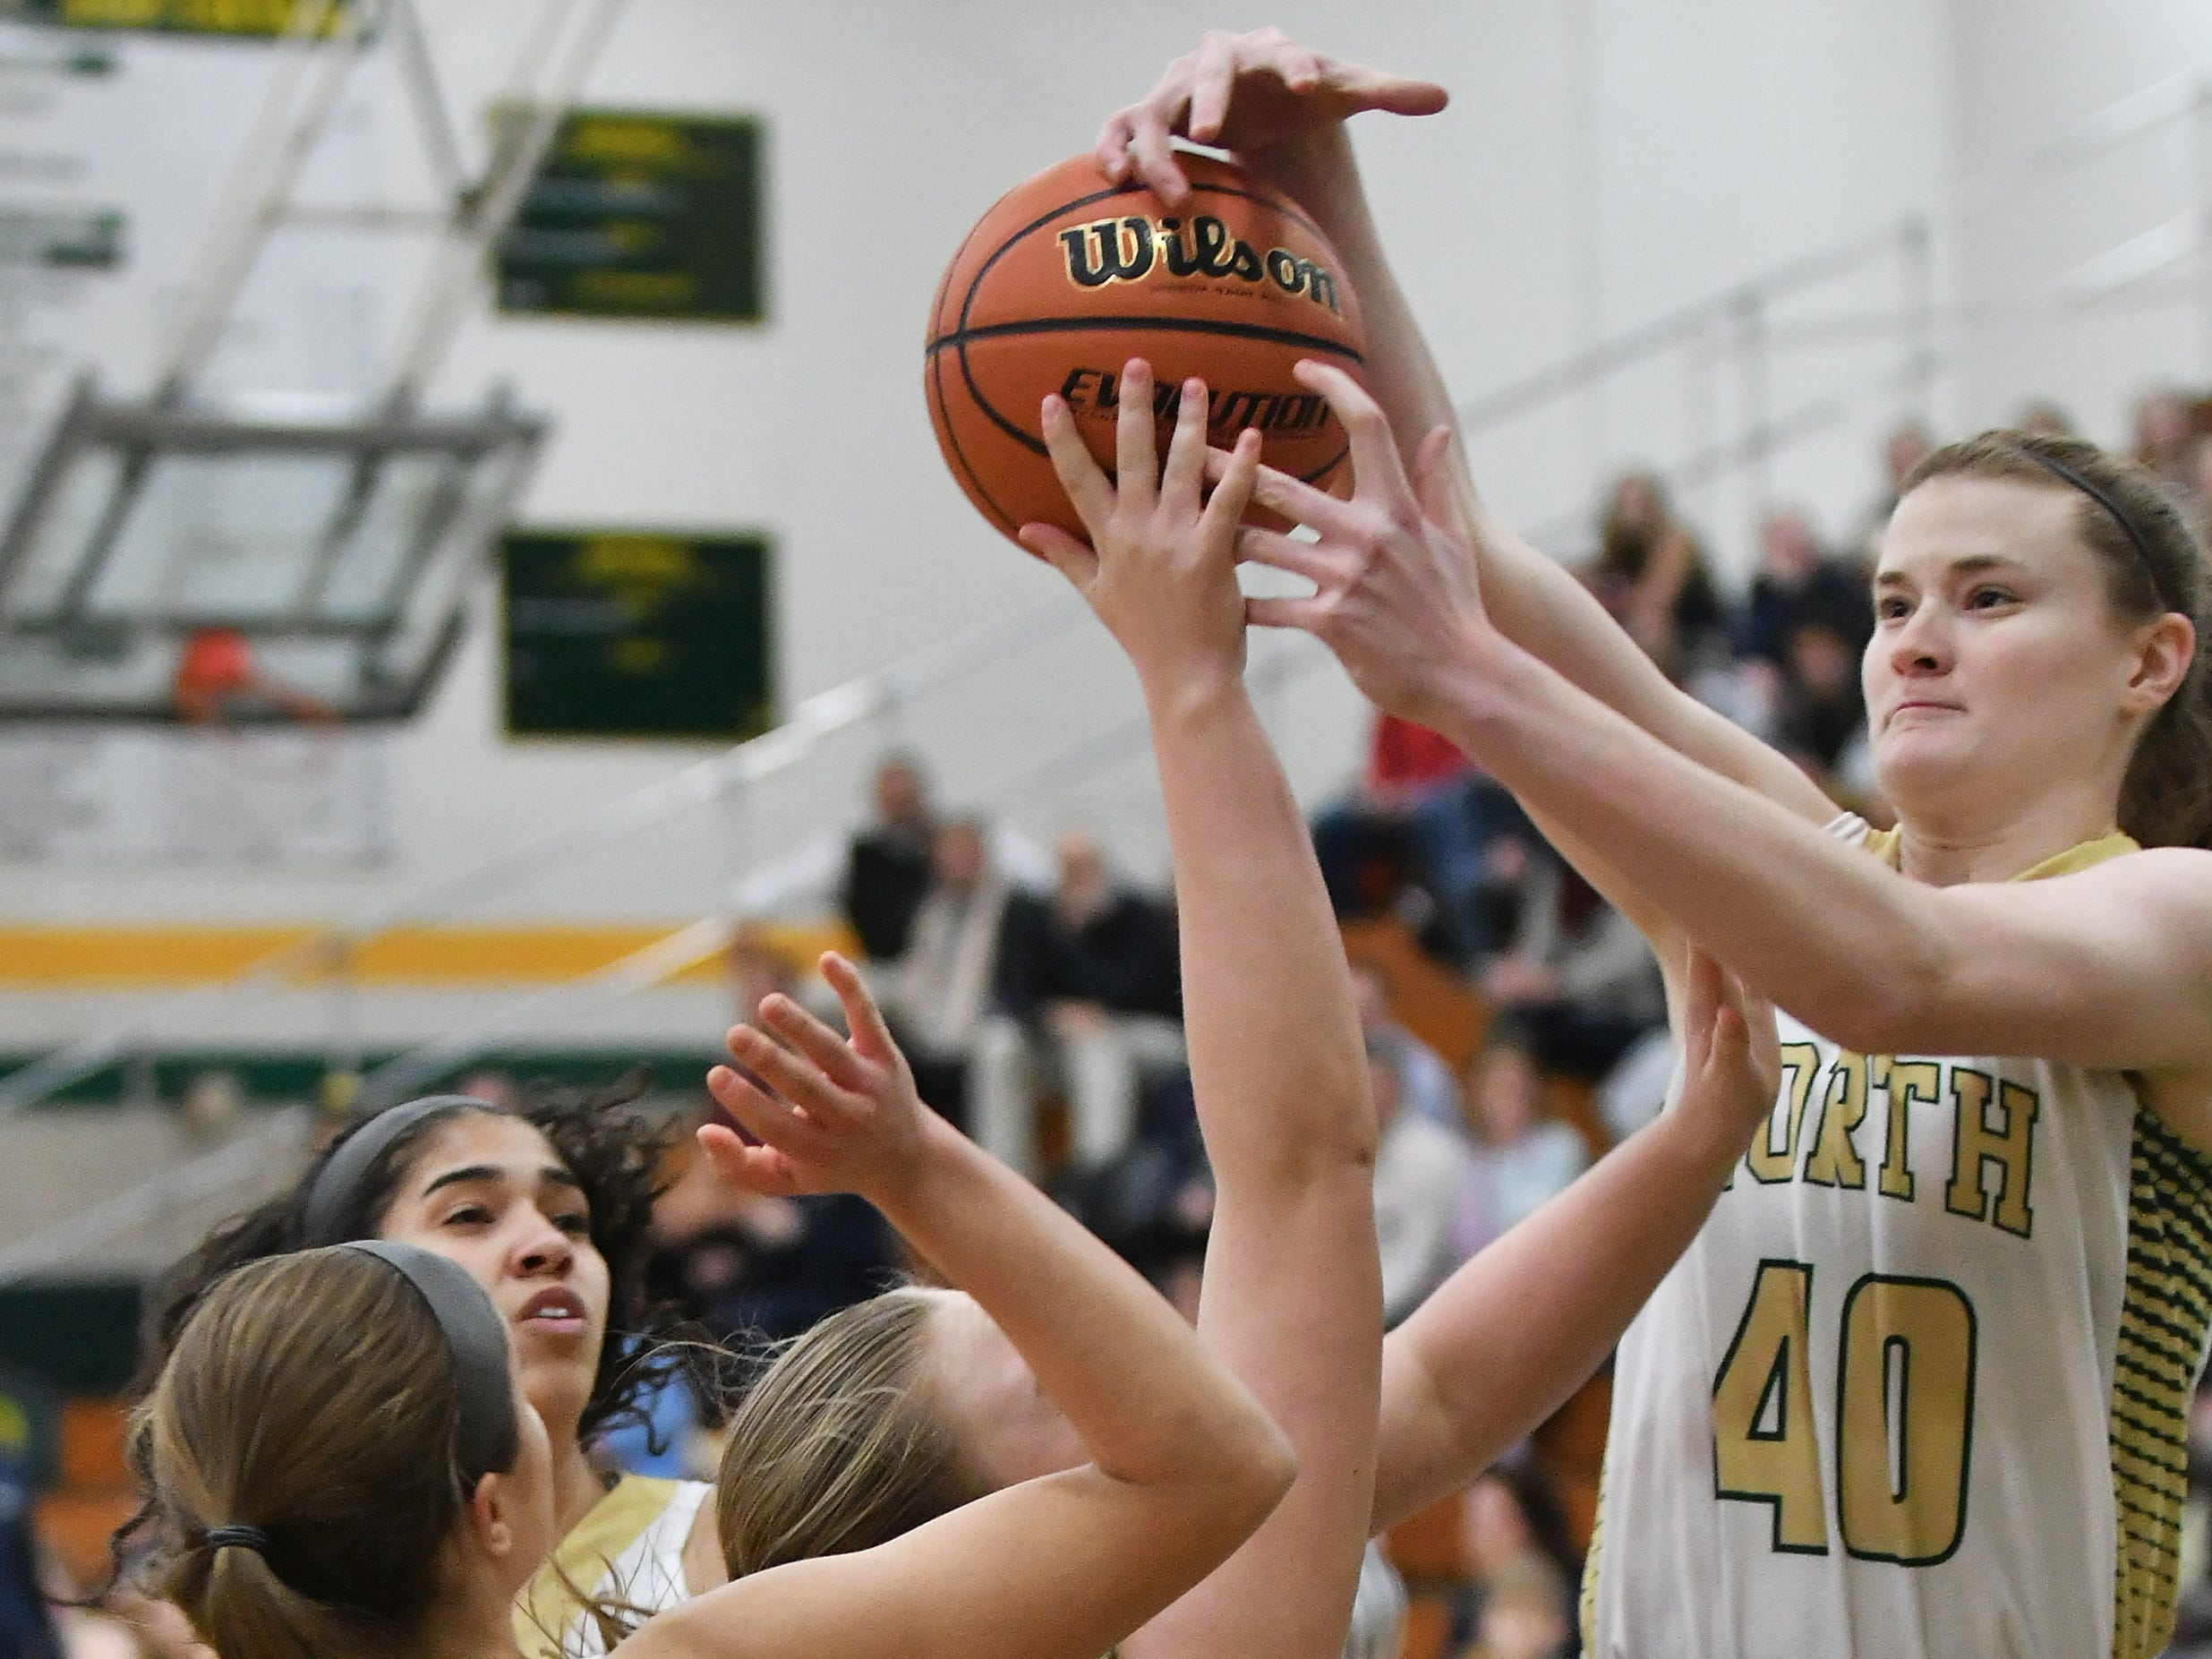 Grosse Pointe North's Julia Ayrault (40) battles Grosse Pointe South's Alexa Downey for a rebound in the first quarter.